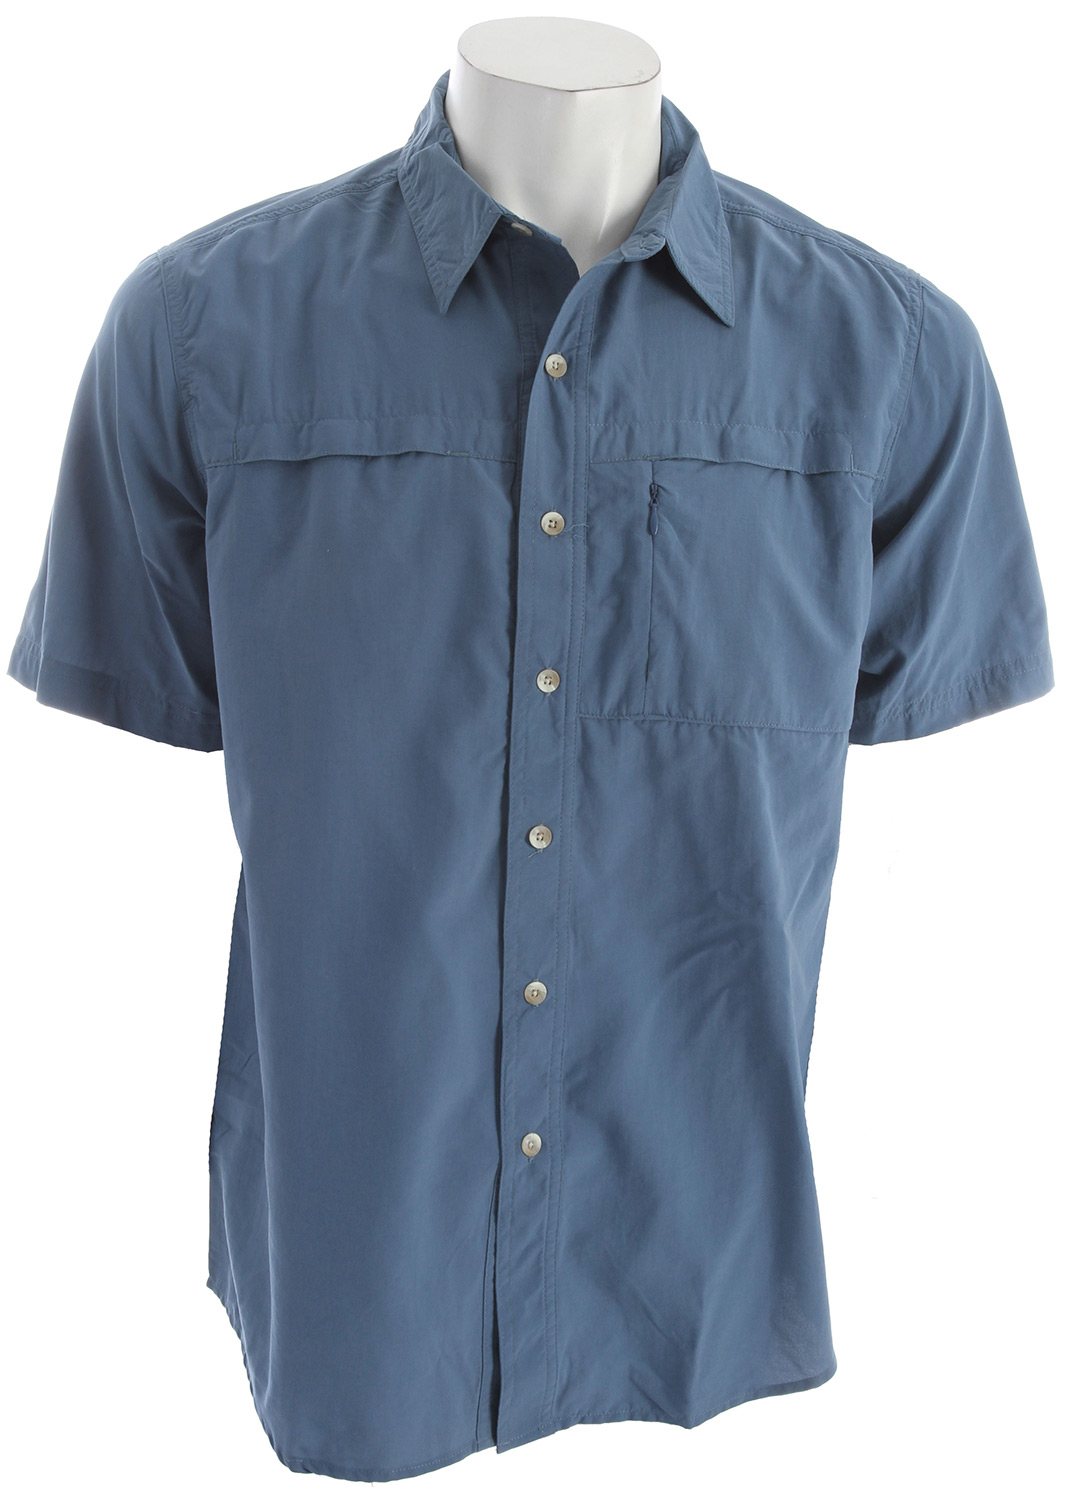 "Go trekking on the trails in Moab and beat the hot summer sun with the Sierra Kalgoorlie Shirt for men. With a UPF rating of 30 and nylon woven fabric, this shirt will shield your skin from the rays and dry quickly. Key Features of the White Sierra Kalgoorlie Shirt:  TRAVEL CLOTH  100% sanded nylon woven  UPF 30  Wicking  Travel friendly  Zip secure chest pocket  Back venting  Fabric weight: 3oz  Center back length: 31.5"" - $26.95"